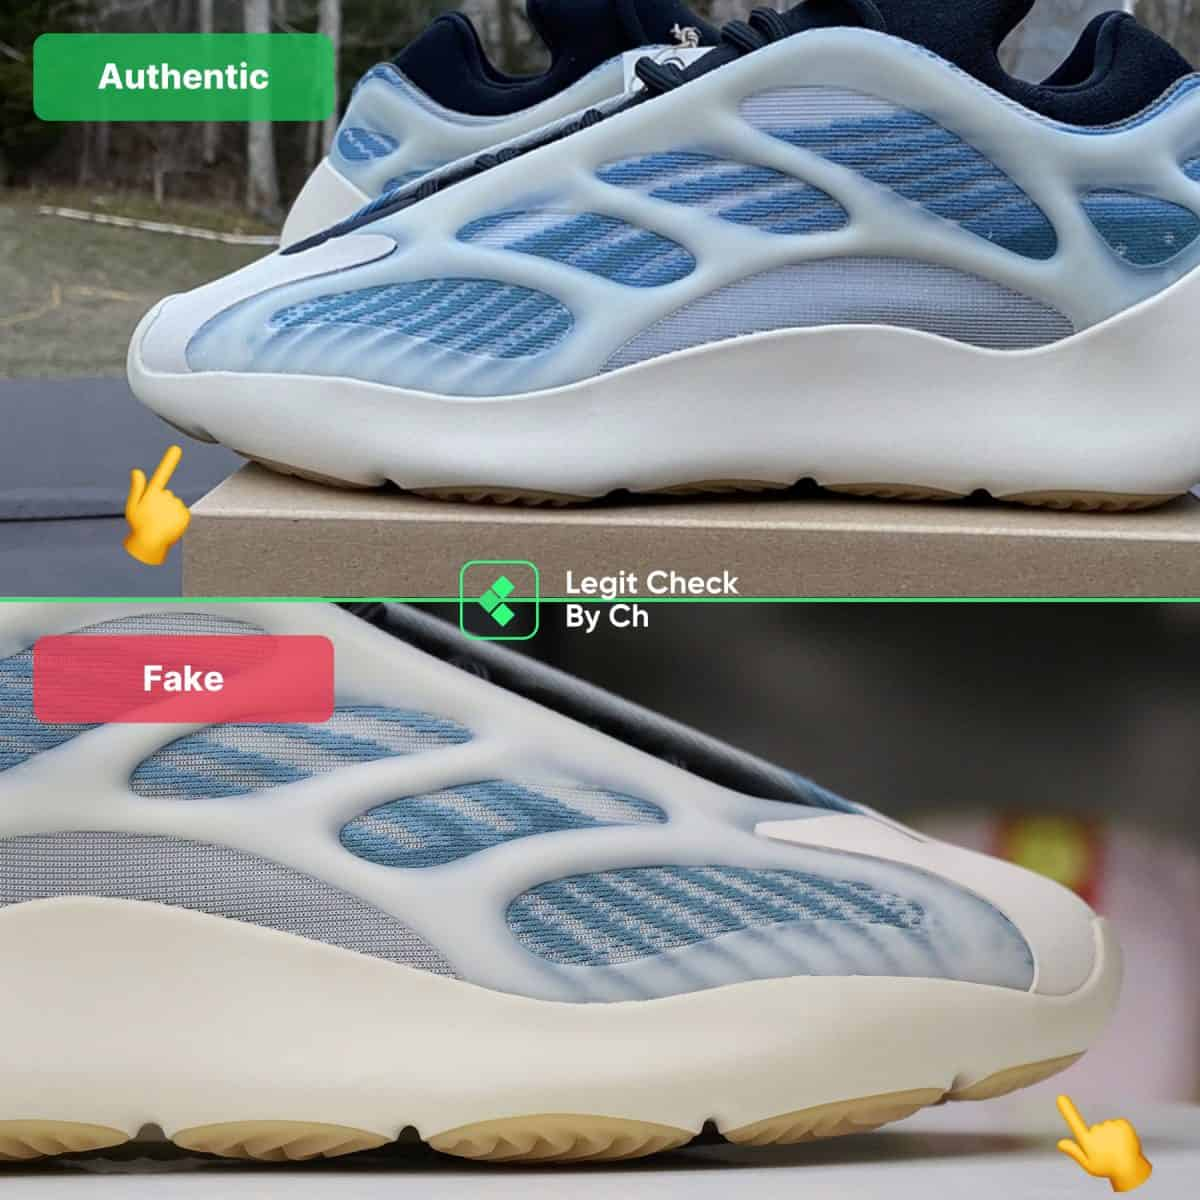 yeezy kyanite authenticity check guide